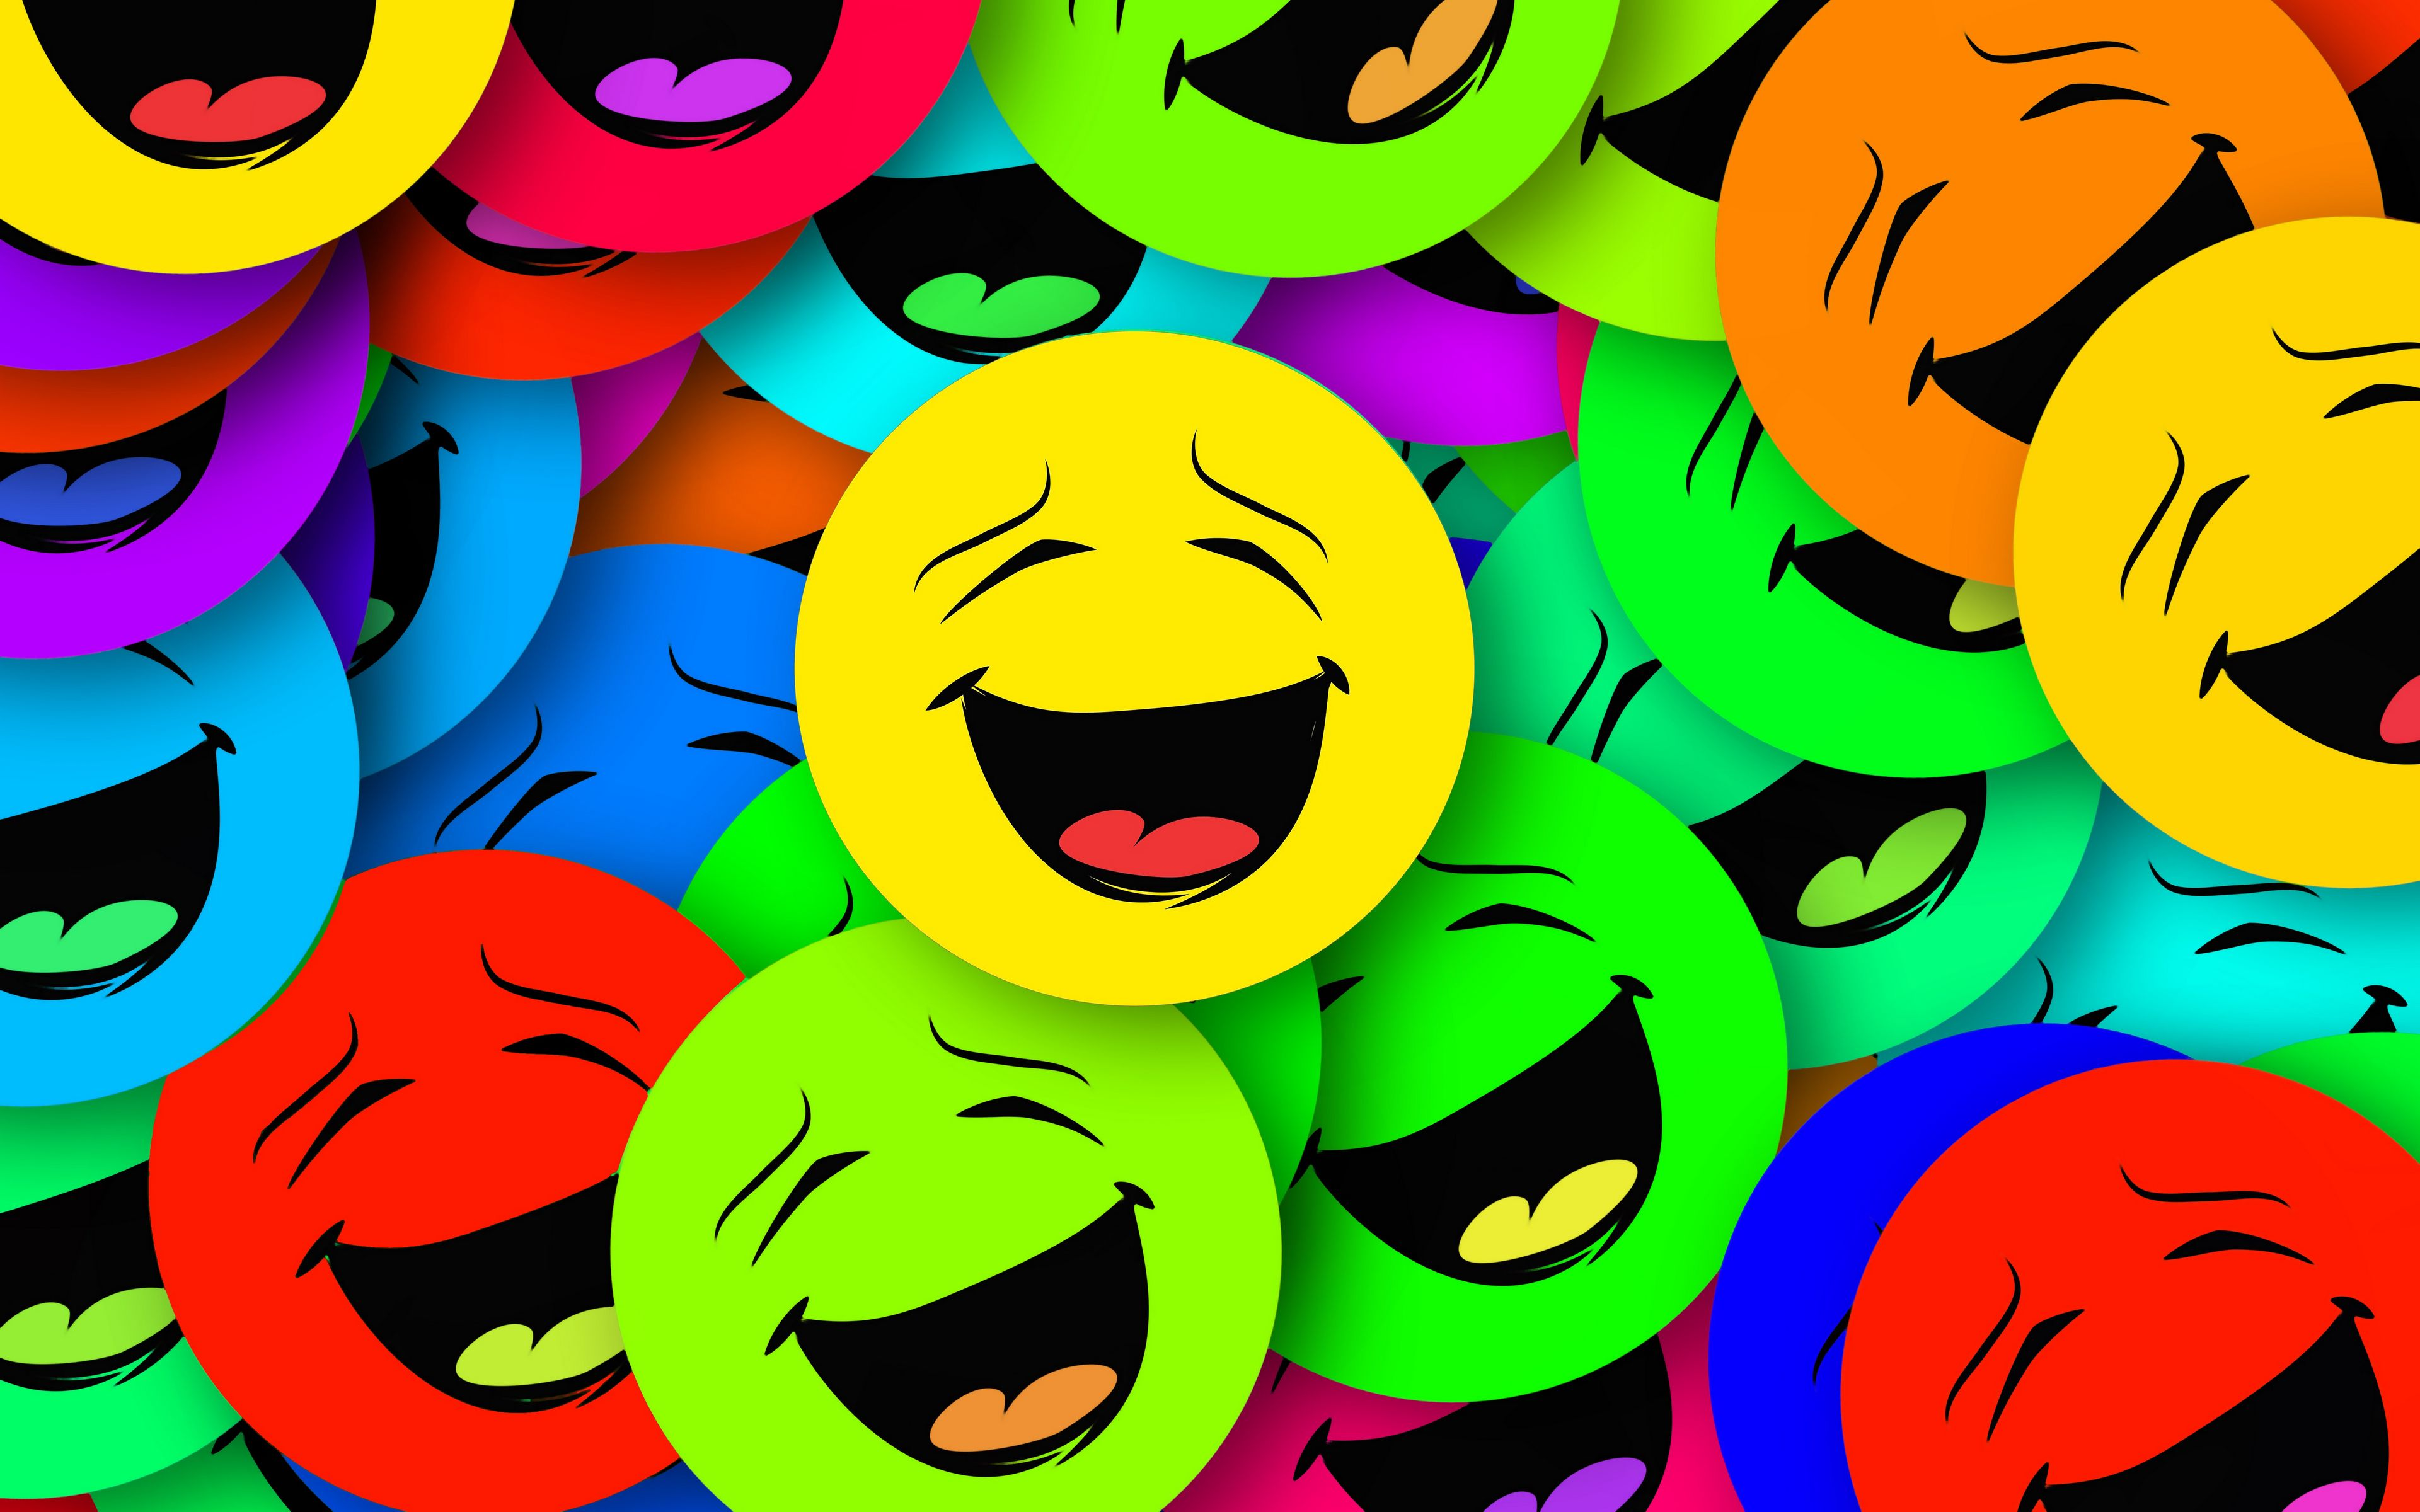 3840x2400 Wallpaper smilies, smiles, colorful, emotion